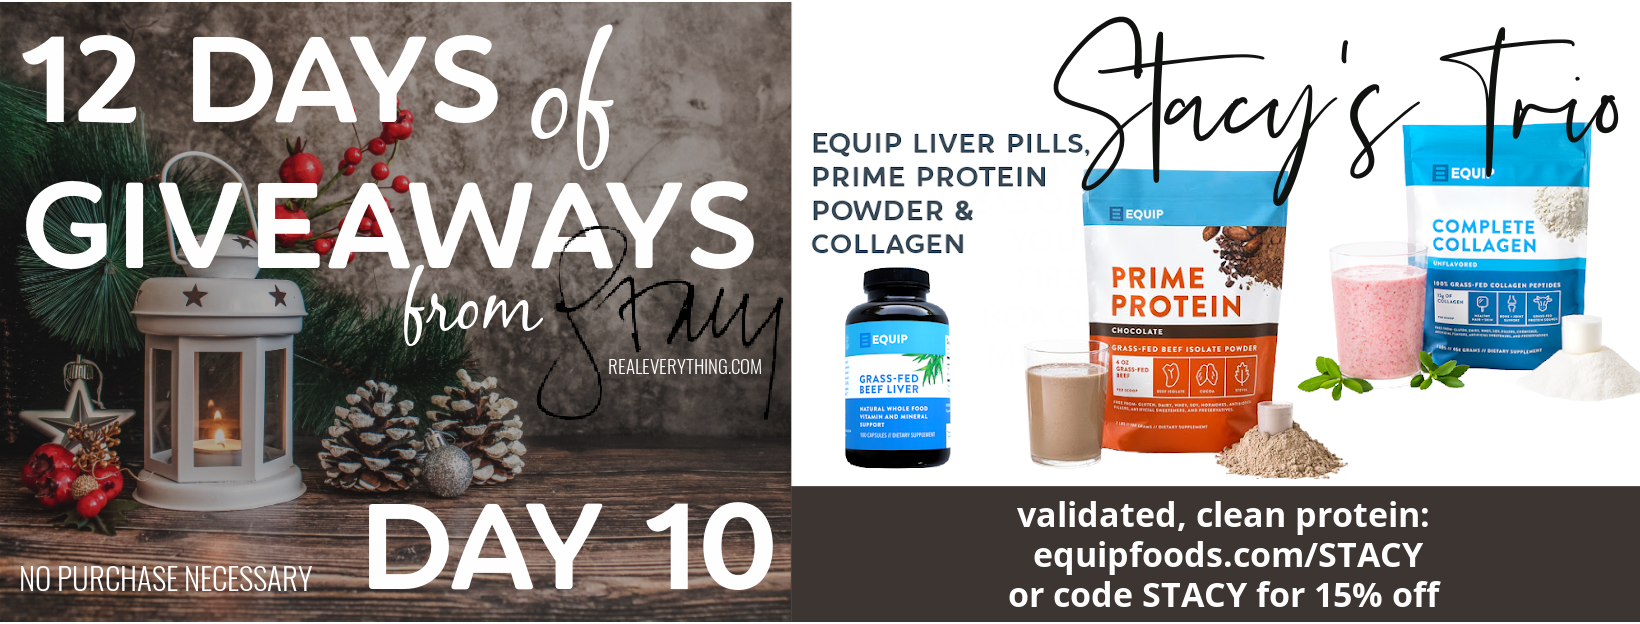 Day 10 Real Everything Giveaway - Equip Protein